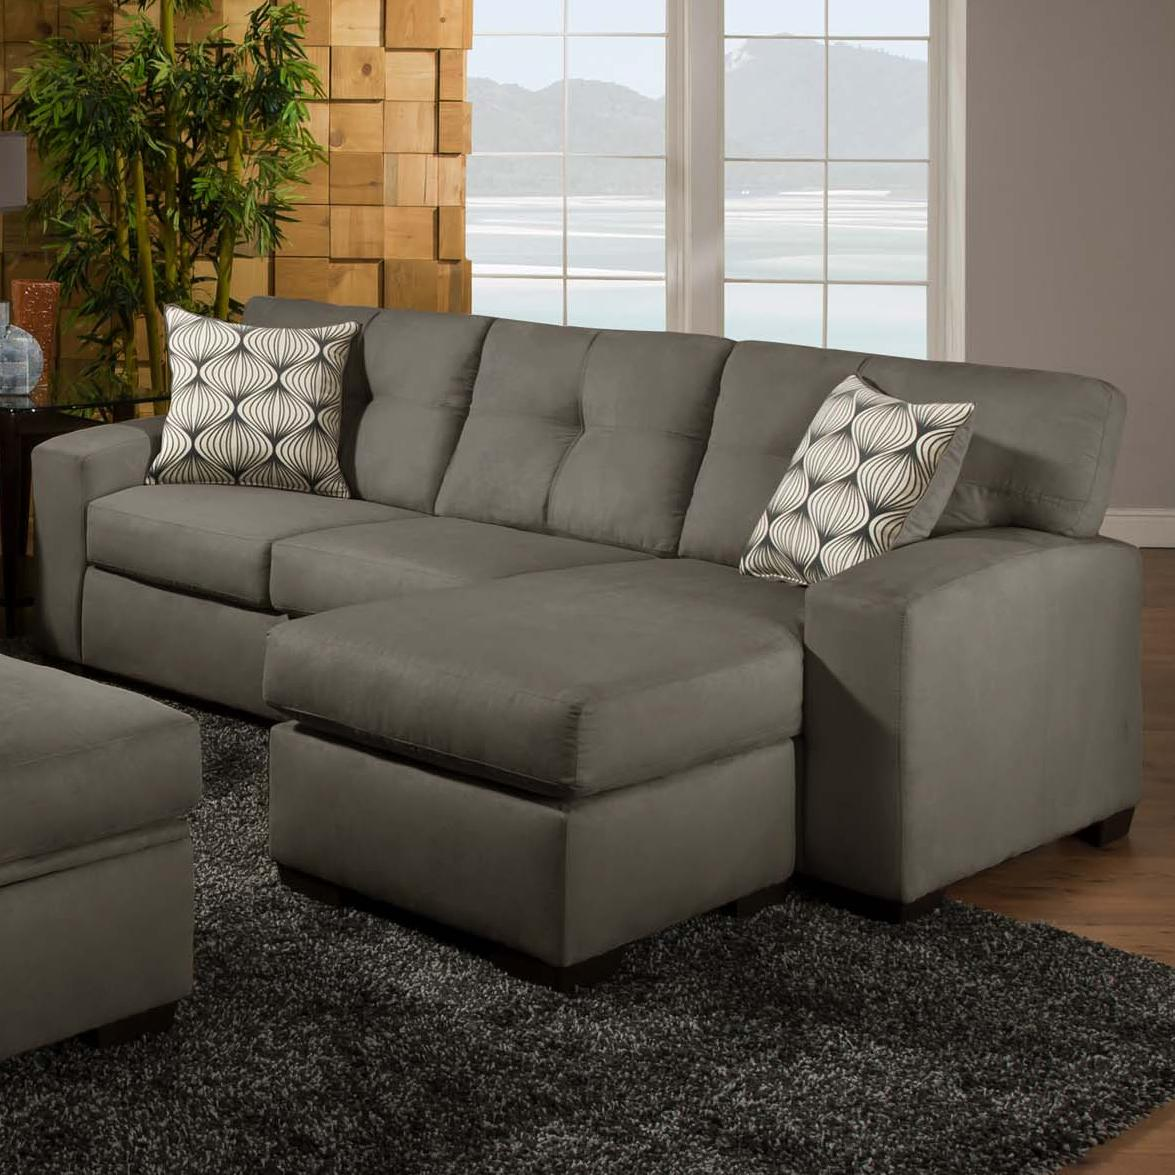 american furniture 5100 group small sectional sofa with chaise ottoman prime brothers. Black Bedroom Furniture Sets. Home Design Ideas